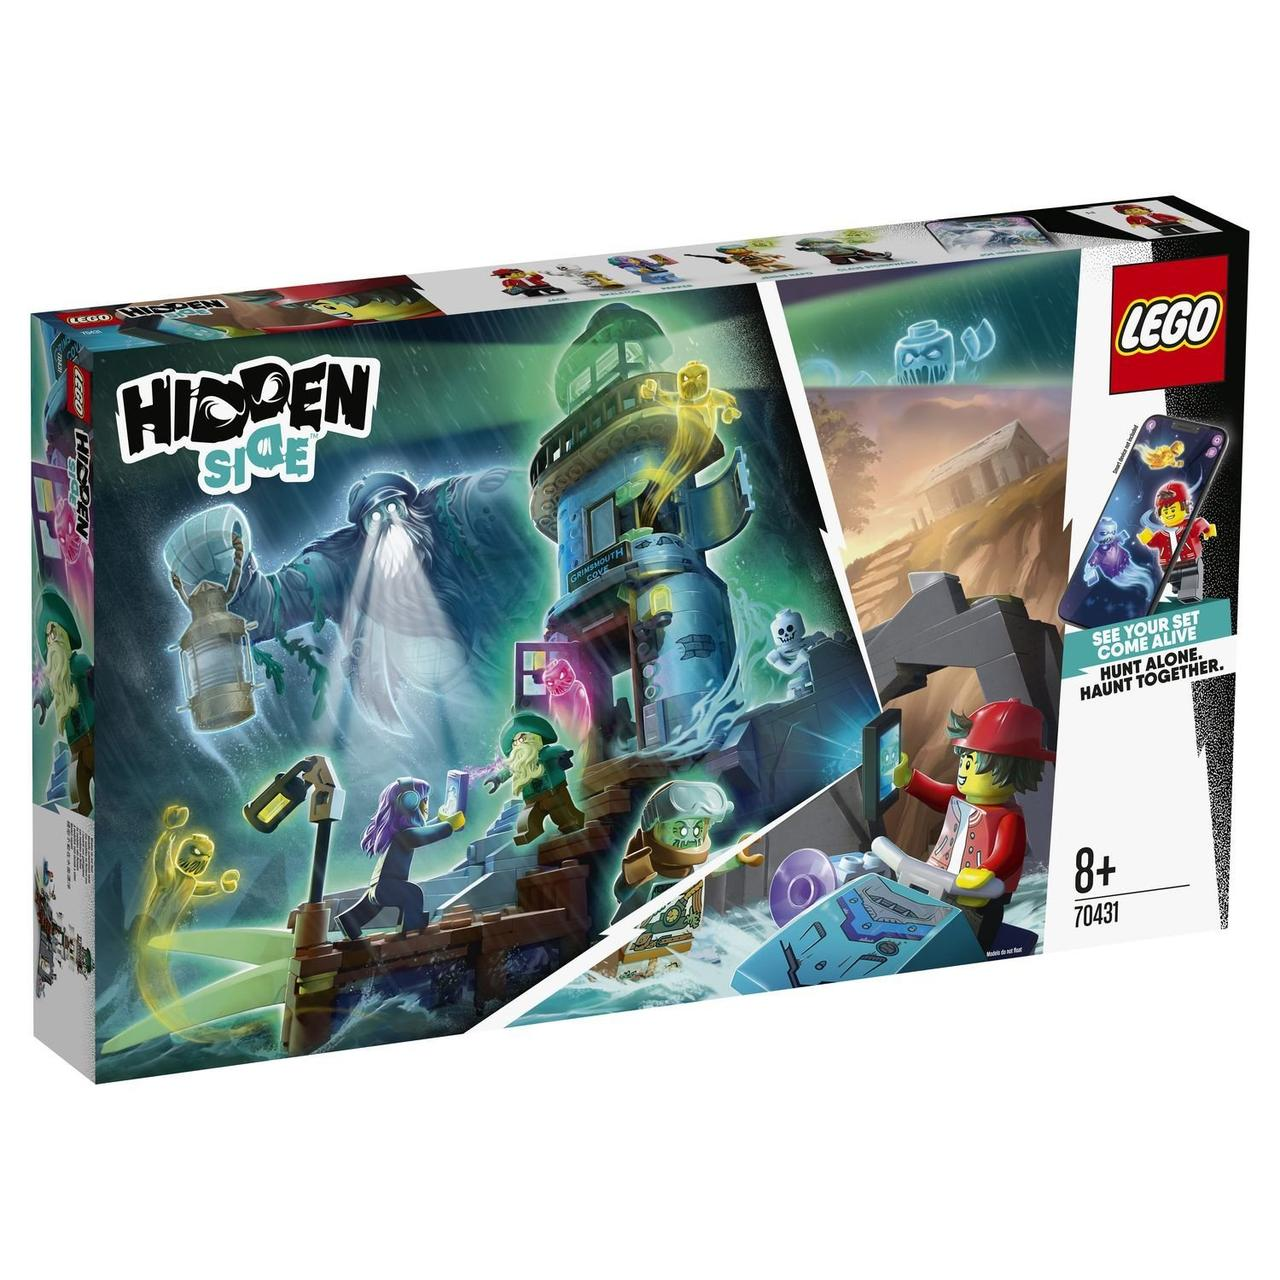 70431 Lego Hidden Side Маяк тьмы, Лего Хидден Сайд